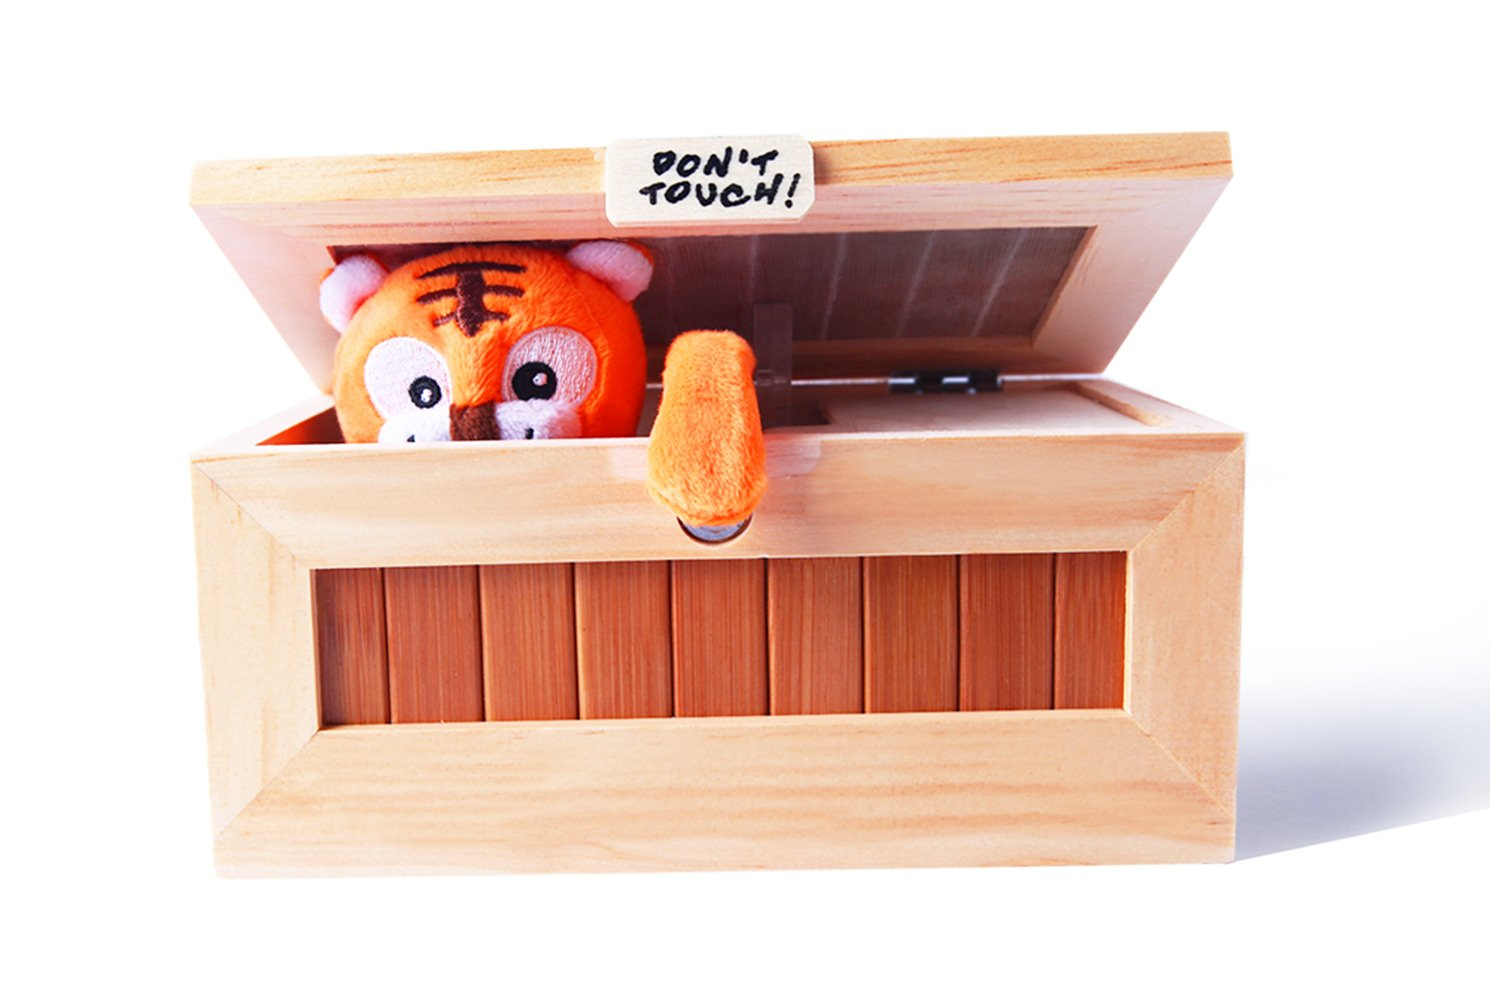 XINHOME Don't Touch Useless Box Surprises Most Leave Me Alone Machine by XINHOME (Image #1)